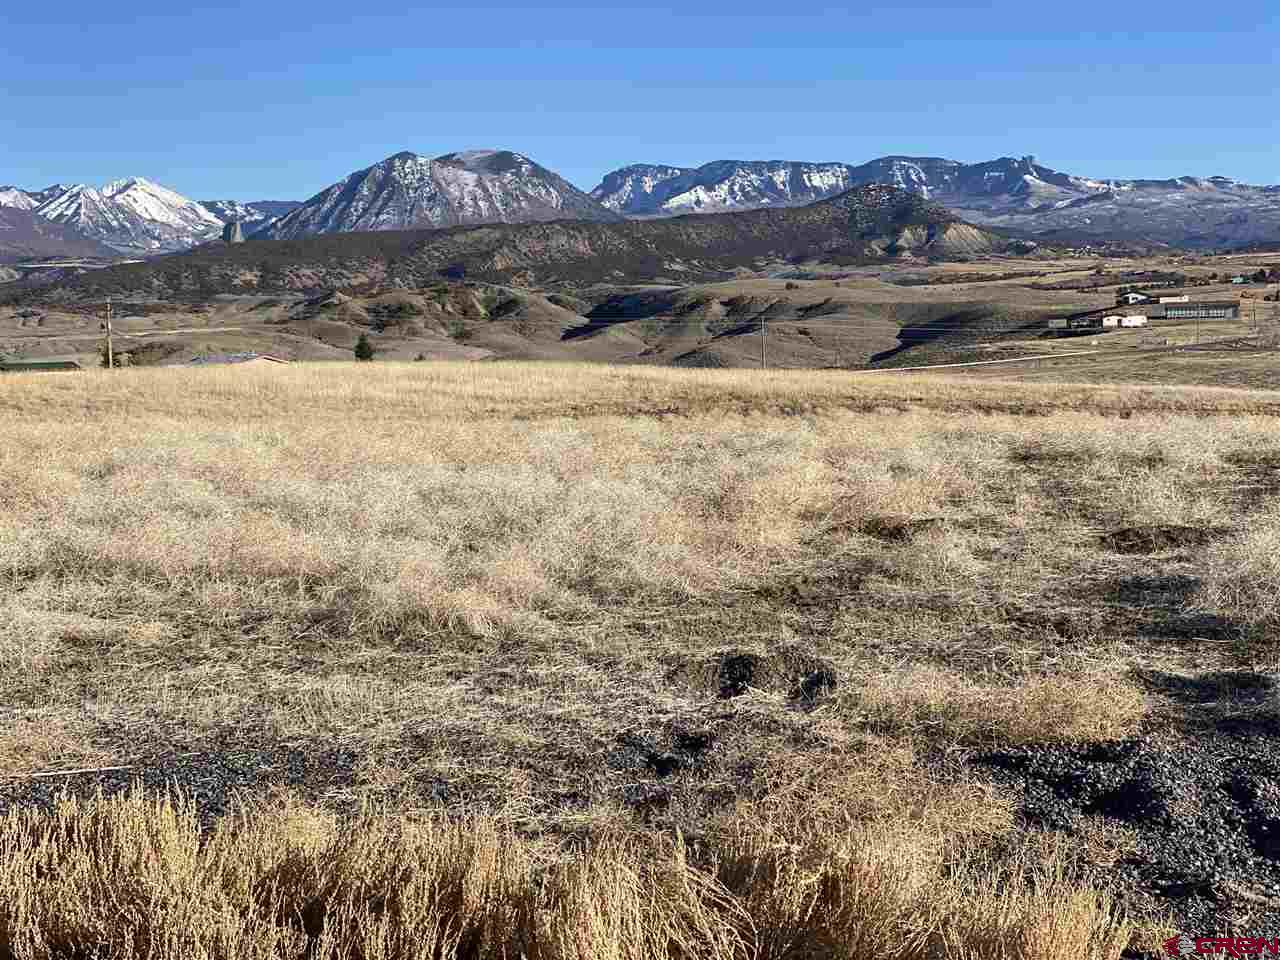 Blank Slate with wide open space and Million Dollar Views.  Stunning West Elk Range of the Colorado Rocky Mountains to the east and sweeping views of the Canyons to the south.  No deed restrictions and no covenants on this property allow for you to dream a little dream or big one.  County Road to the edge of the property, with nicely graved rock drive up to a private building site well off the road.  Desert like landscape with native vegetation is sparse but beautiful. A well can be drilled and Sellers agent shall provide Well Permit as needed.